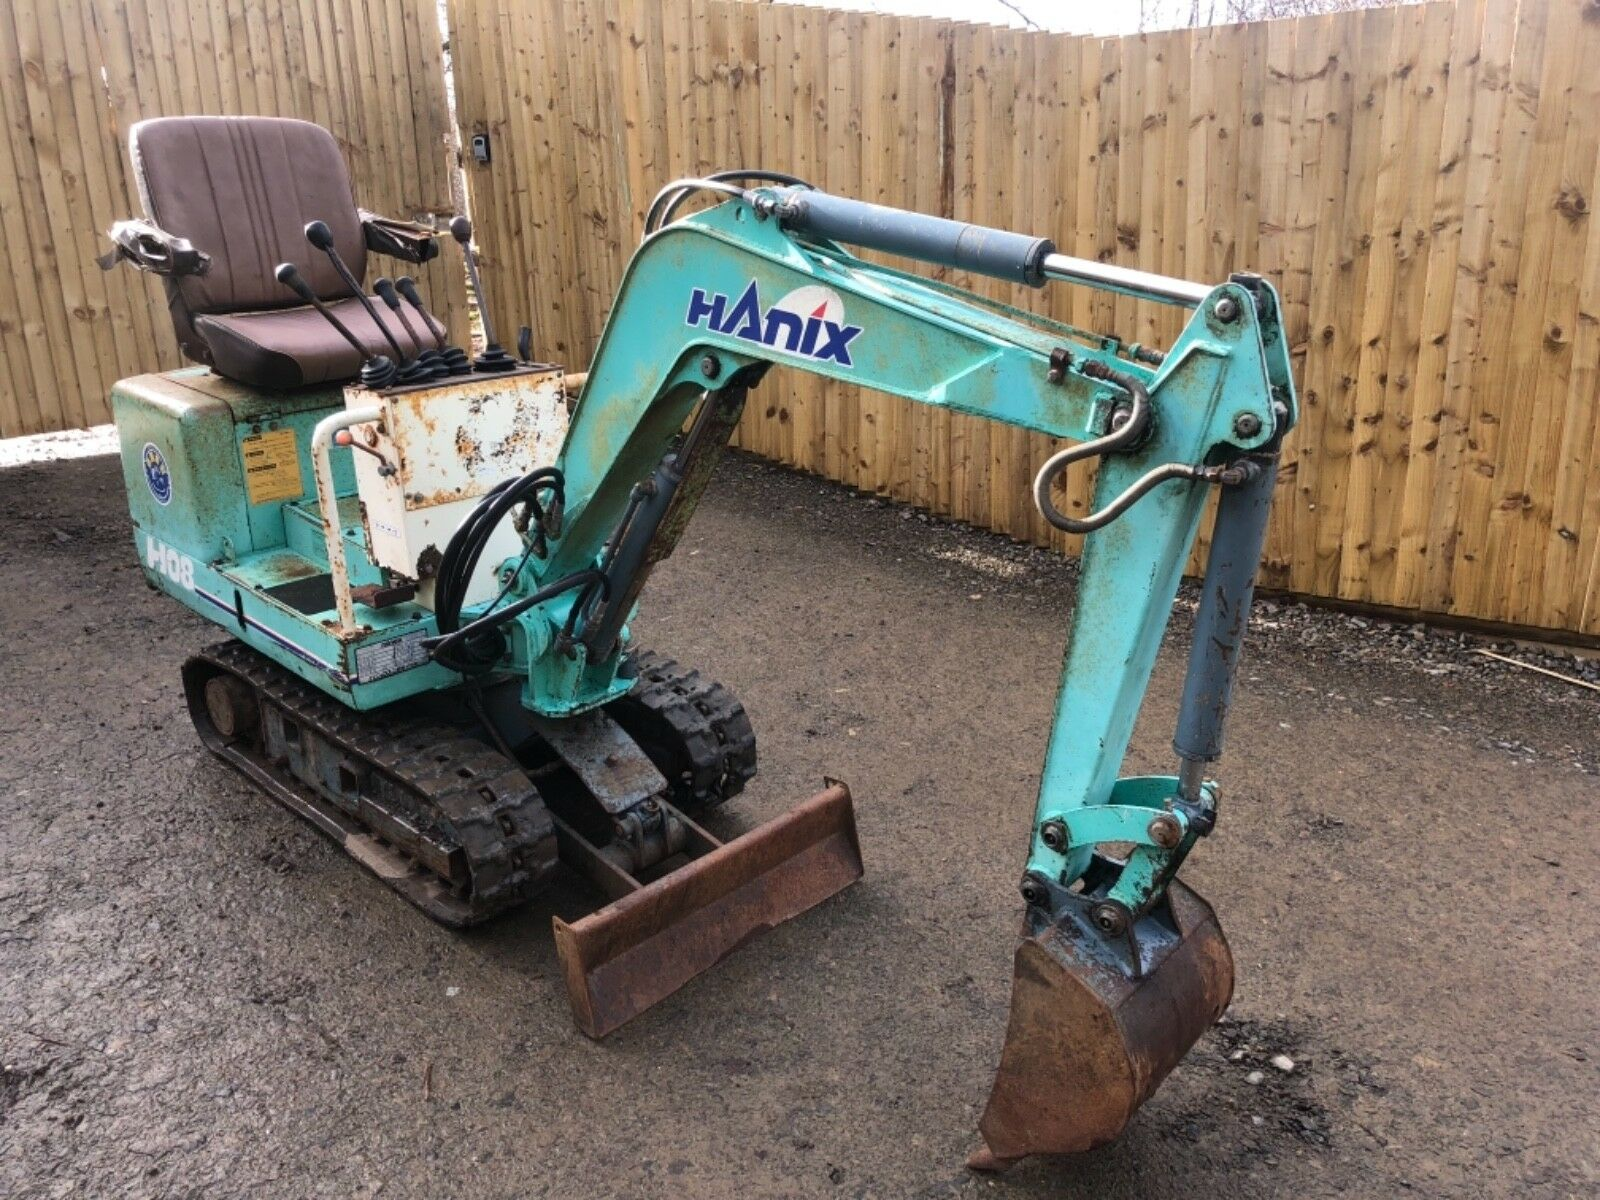 Hanix H08 0.8 Mini Micro Digger Excavator Mini Look Look 1 of 8 See More